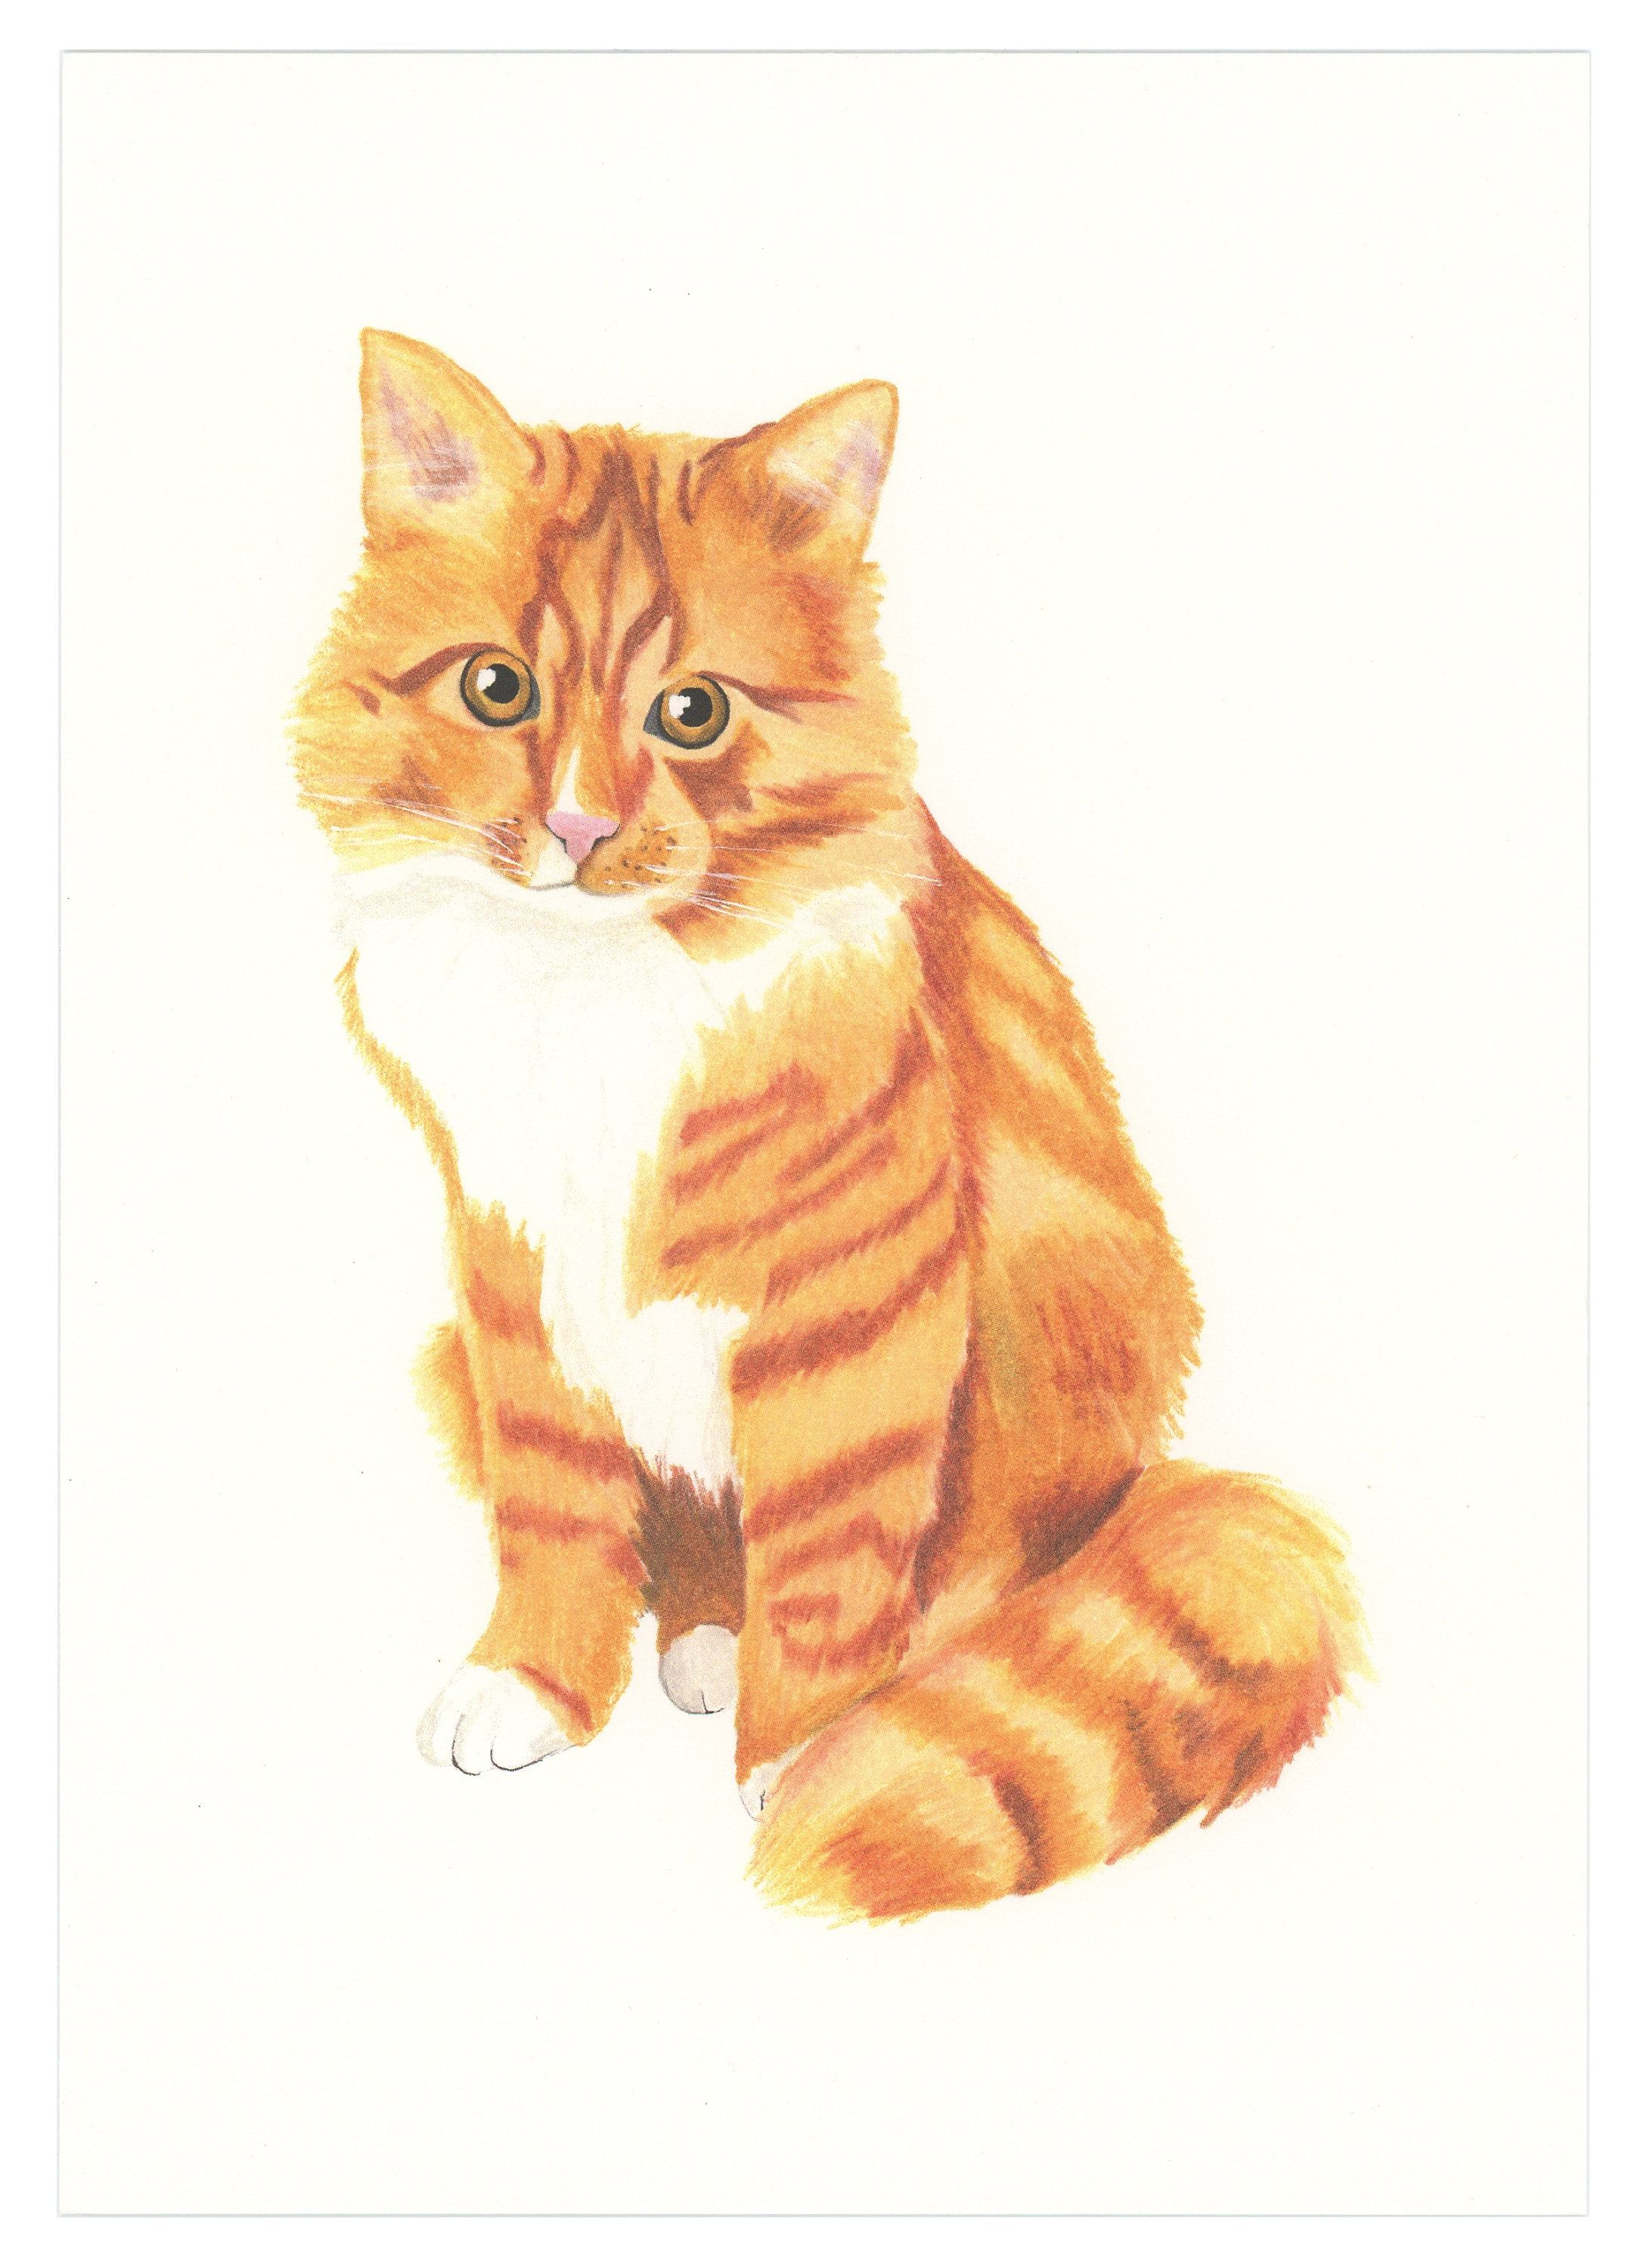 Details Of Orange Tabby Cat Personality Reddit 2020 Pets News And Review